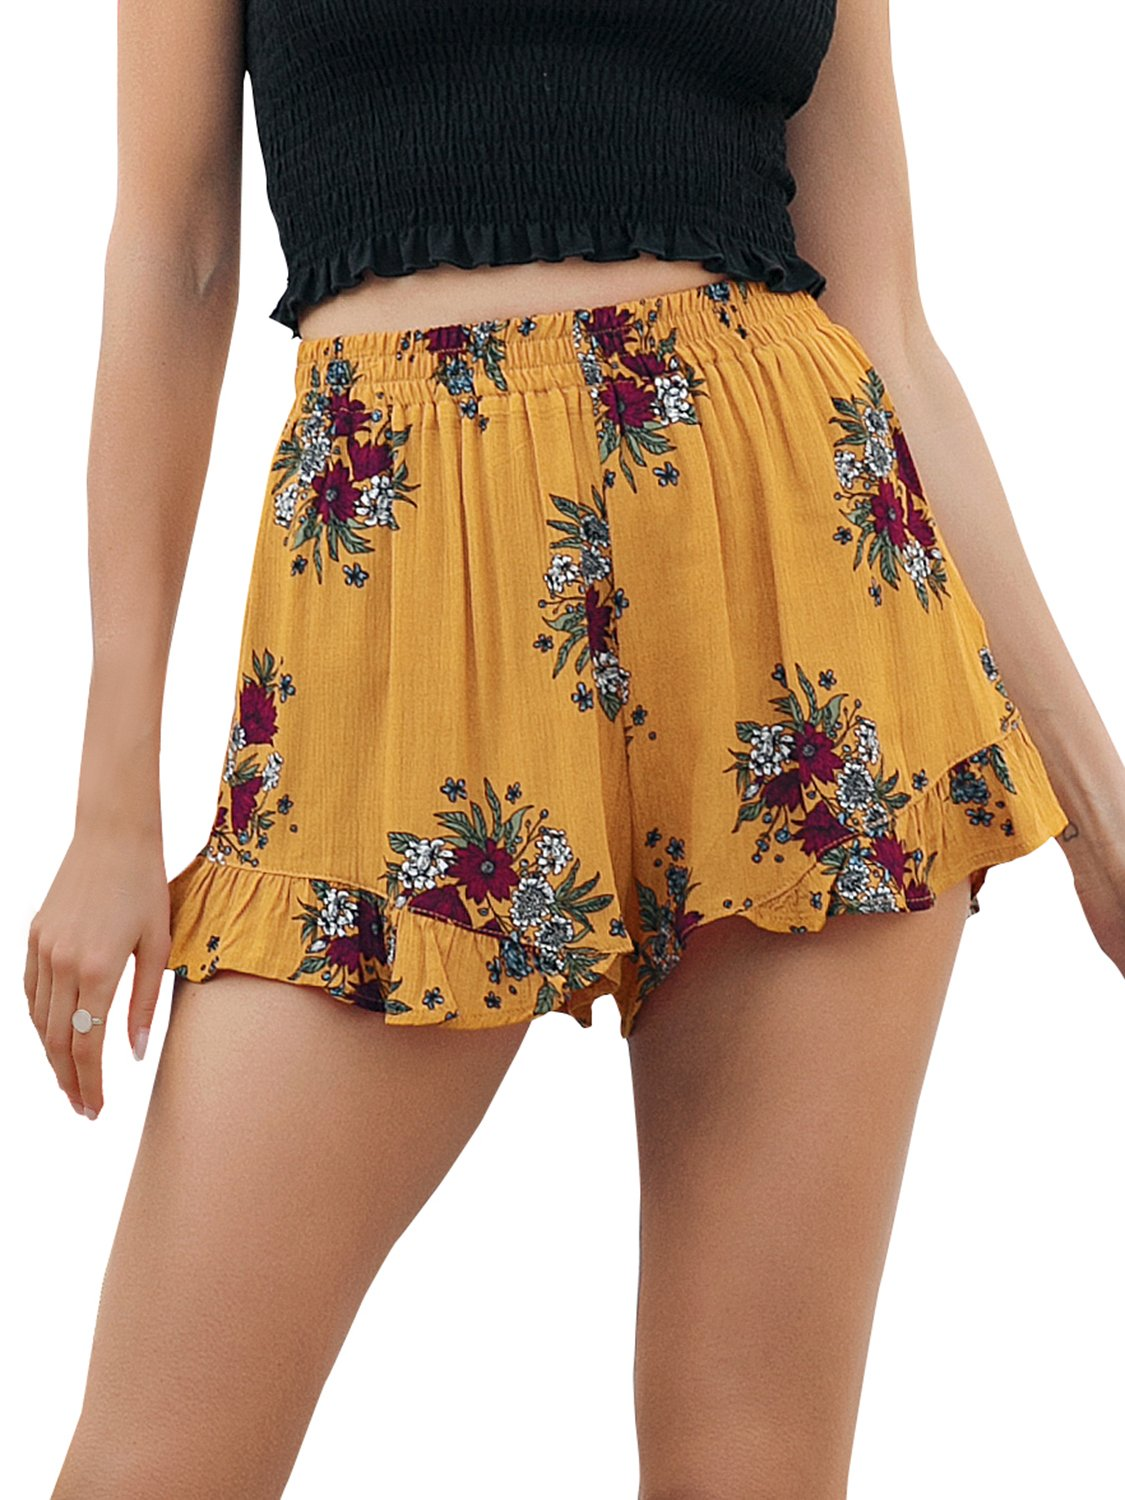 Simplee Women's High Waisted Casual Shorts Summer Boho Floral Print Elastic Shorts Yellow US 10 by Simplee Apparel